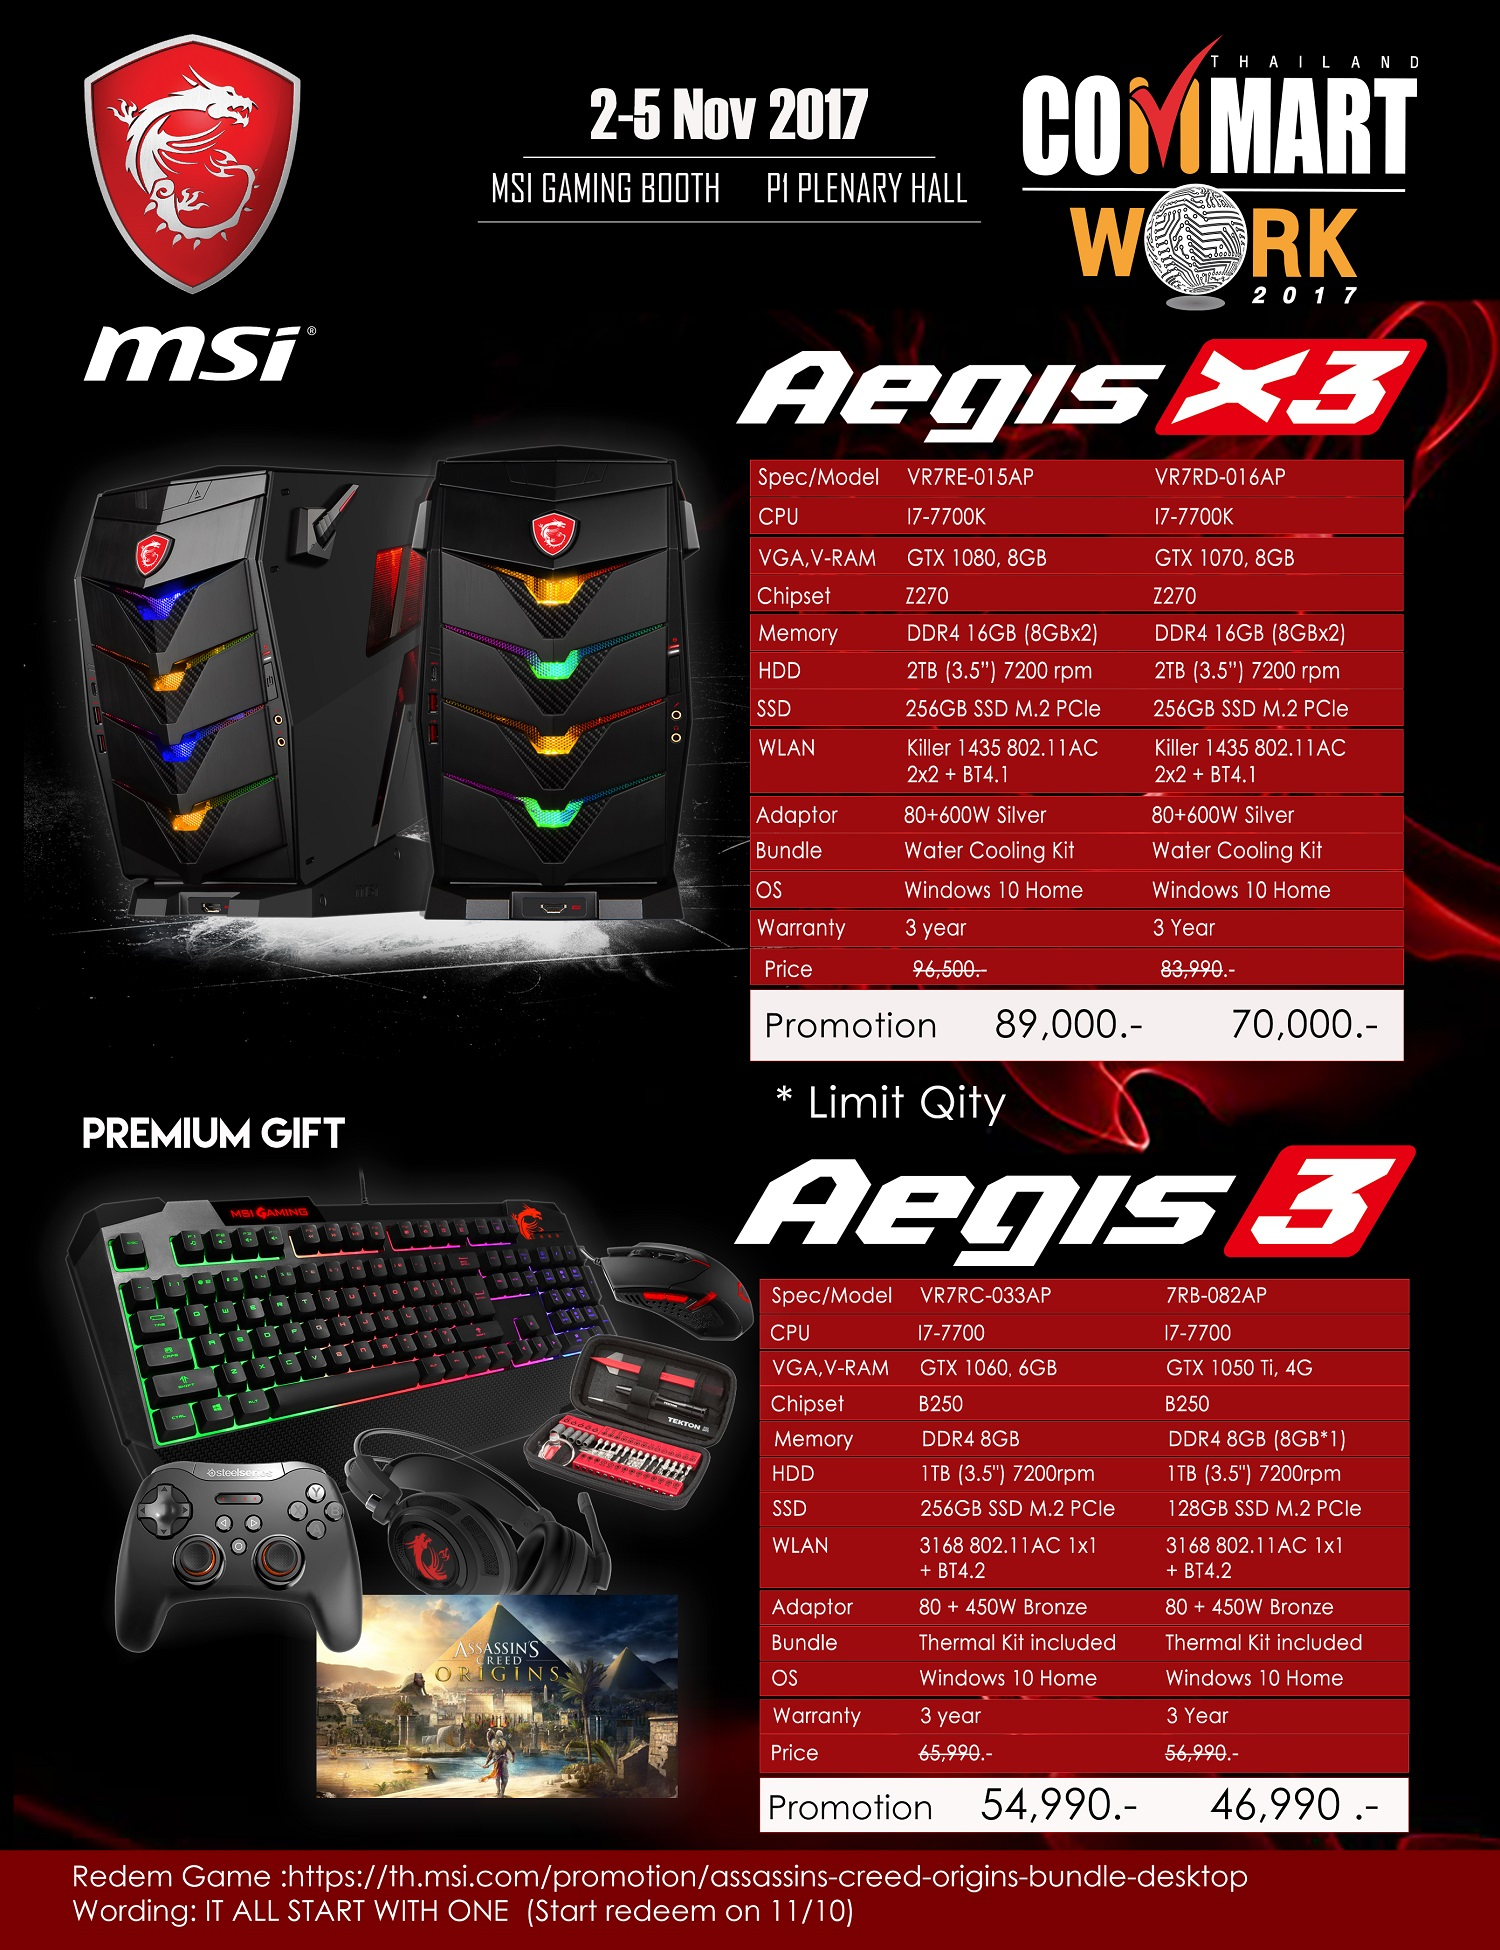 Promotion for Aegis series